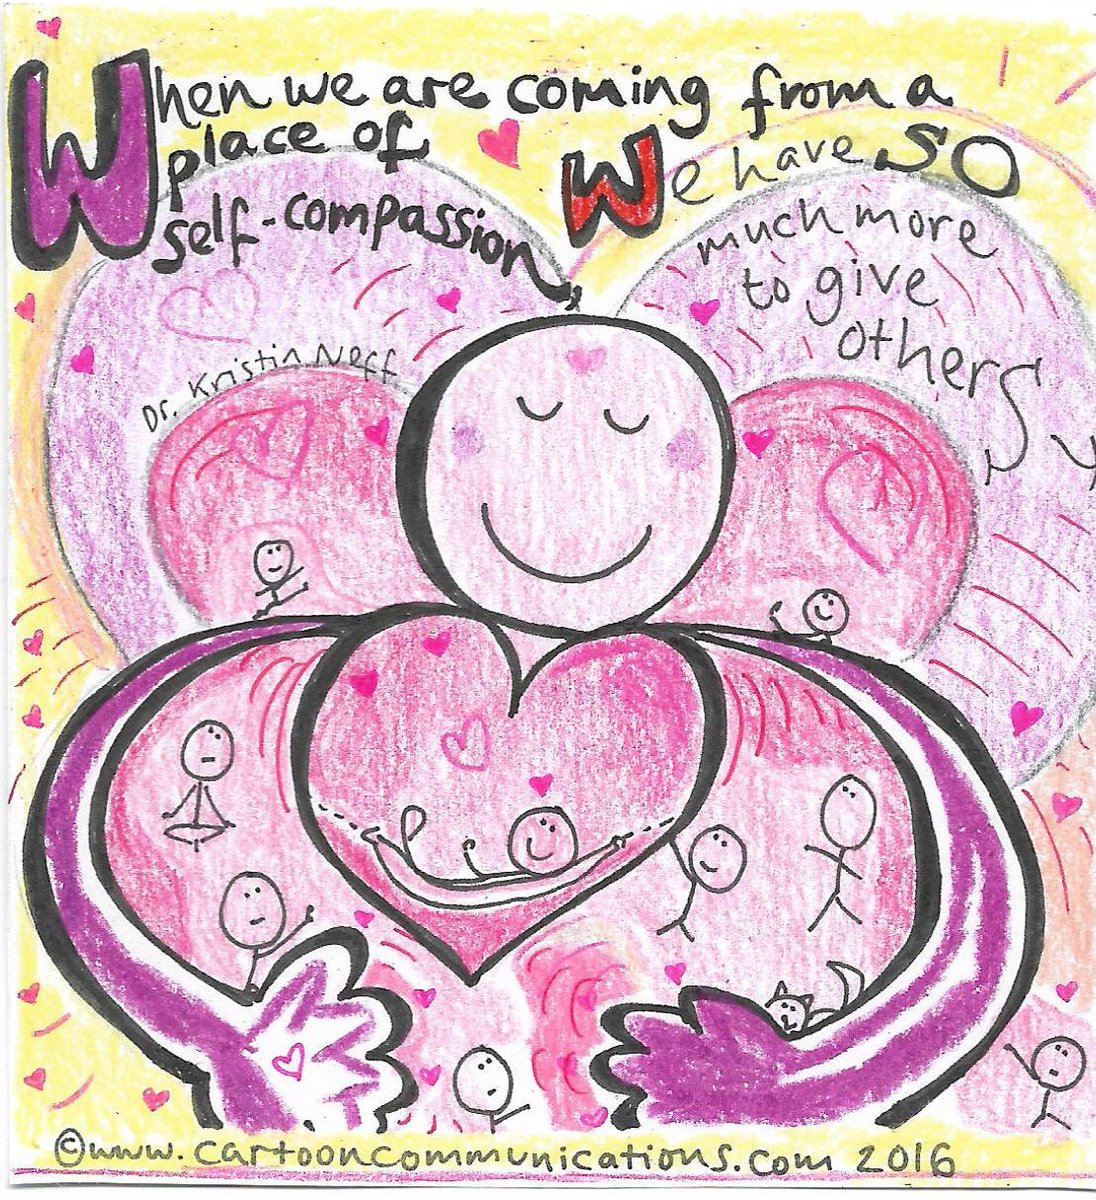 With #SelfLove, we have so much more #Love to give!   #JoyTrain #Joy #Kindness #MentalHealth #Mindfulness #GoldenHearts #FamilyTrain #IAM #ChooseLove #Quote  #IAMChoosingLove #TuesdayMorning #TuesdayThoughts #TuesdayMotivation RT @HYHUTriangle